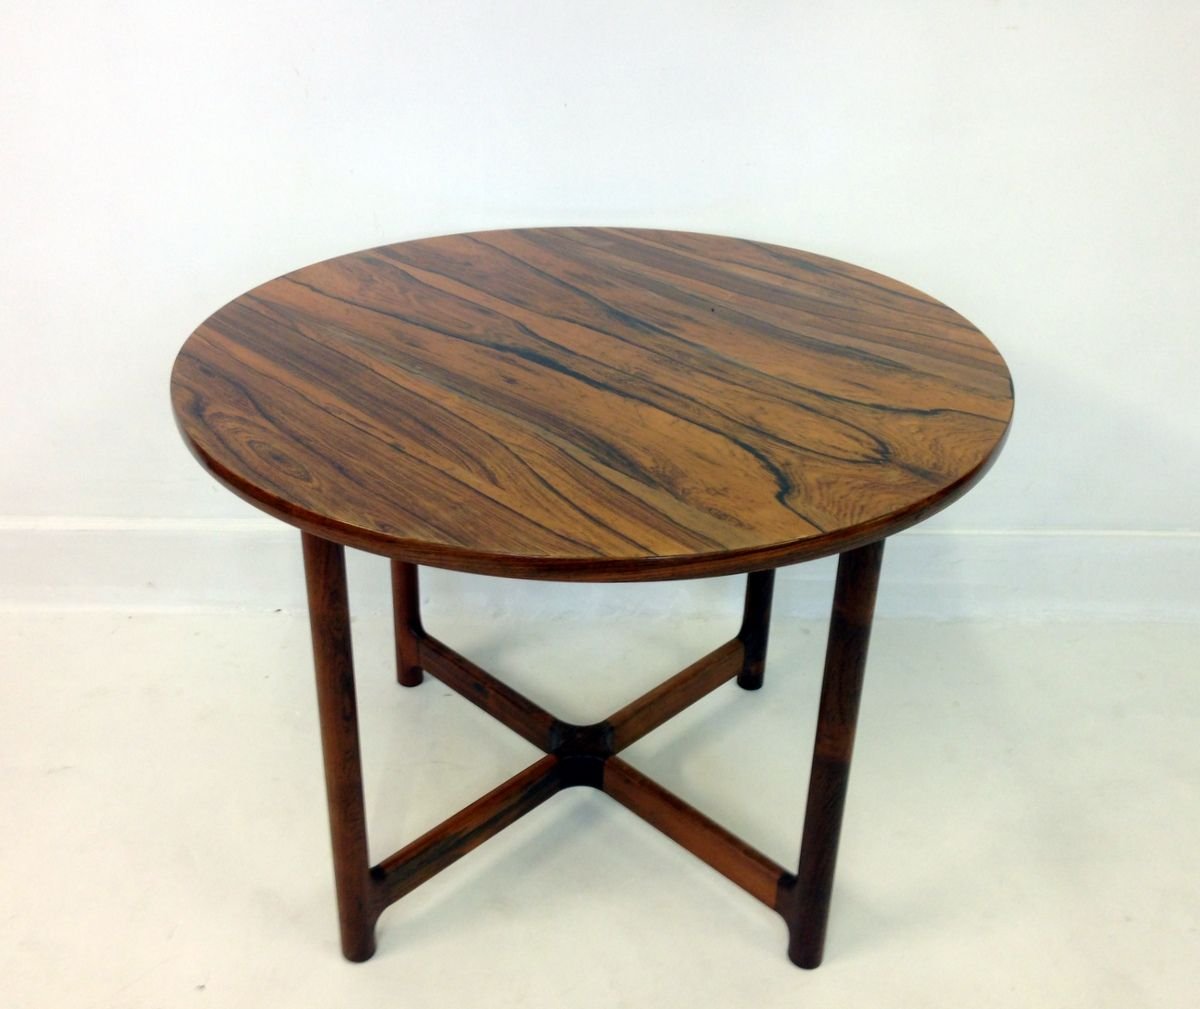 Danish Rosewood Coffee Table by Arne Halvorsen for Rasmus  : danish rosewood coffee table by arne halvorsen for rasmus solberg 1960s 1 from www.pamono.com size 1200 x 1009 jpeg 296kB